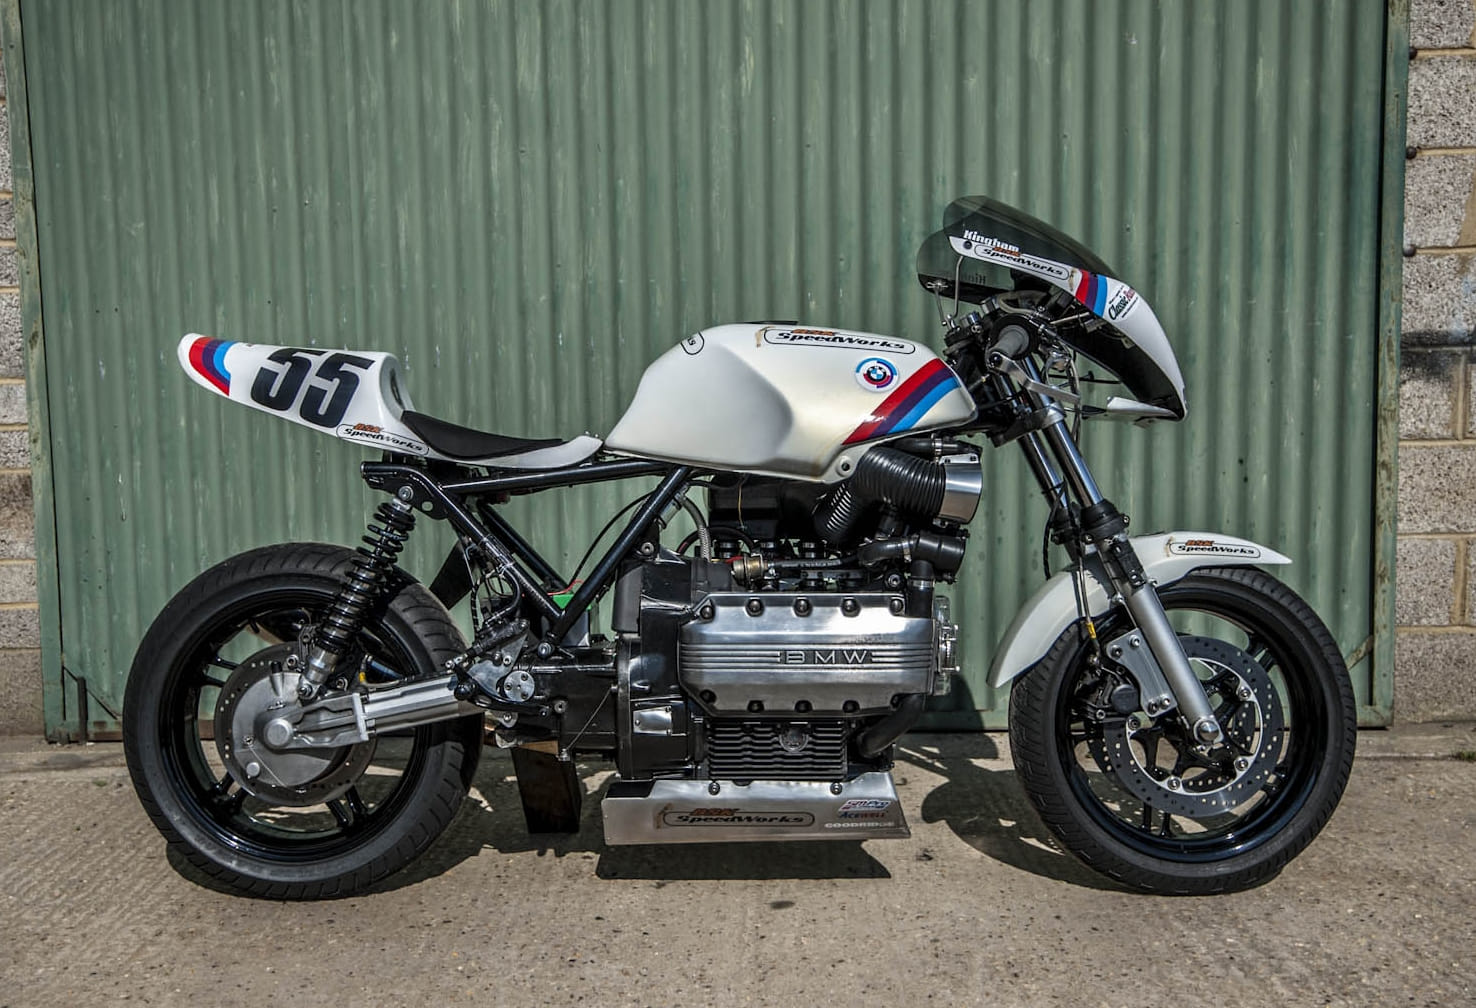 BMW K100rs Racer